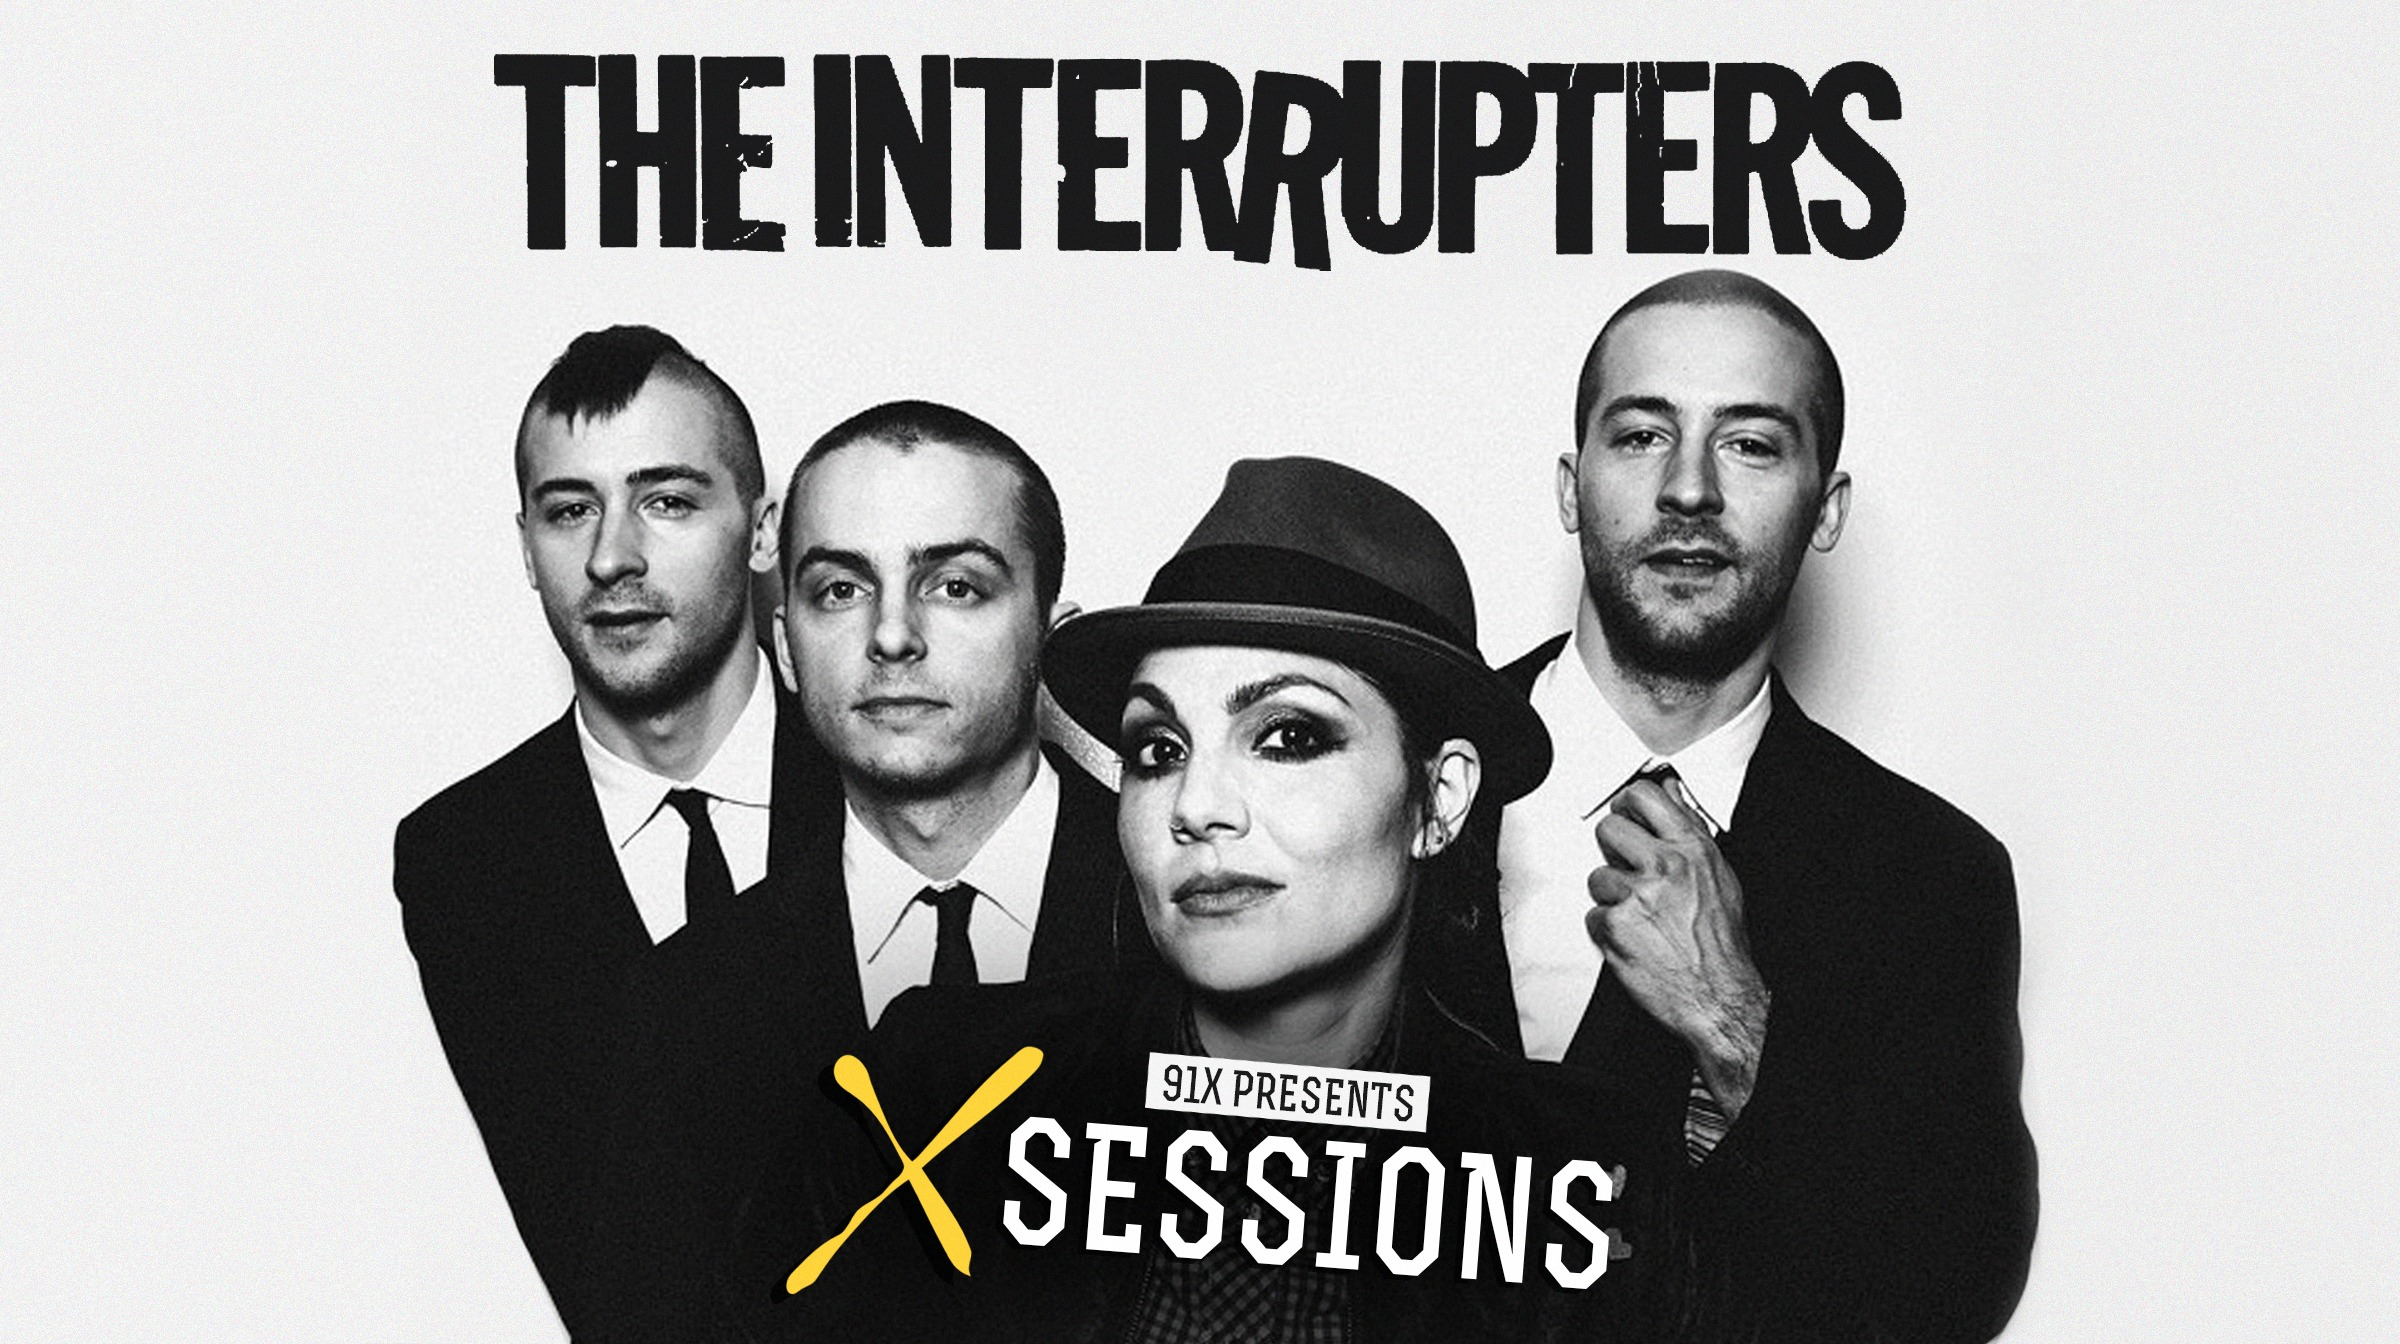 Toyota Dealers San Diego County >> The Interrupters - A Friend Like Me and By My Side (360°) [WATCH] - 91X FM